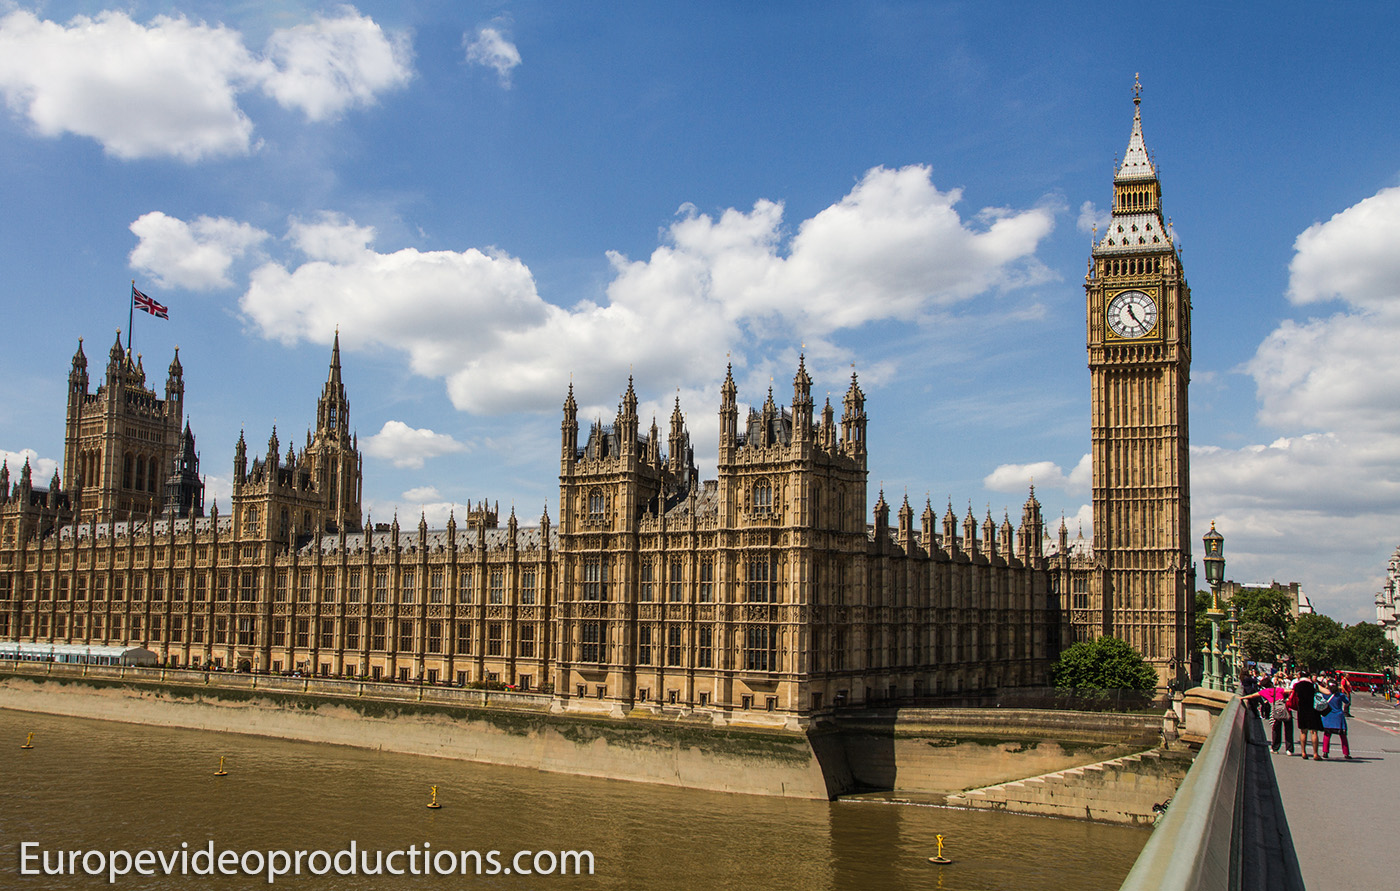 Big Ben and Houses of Parliament in London, capital of England